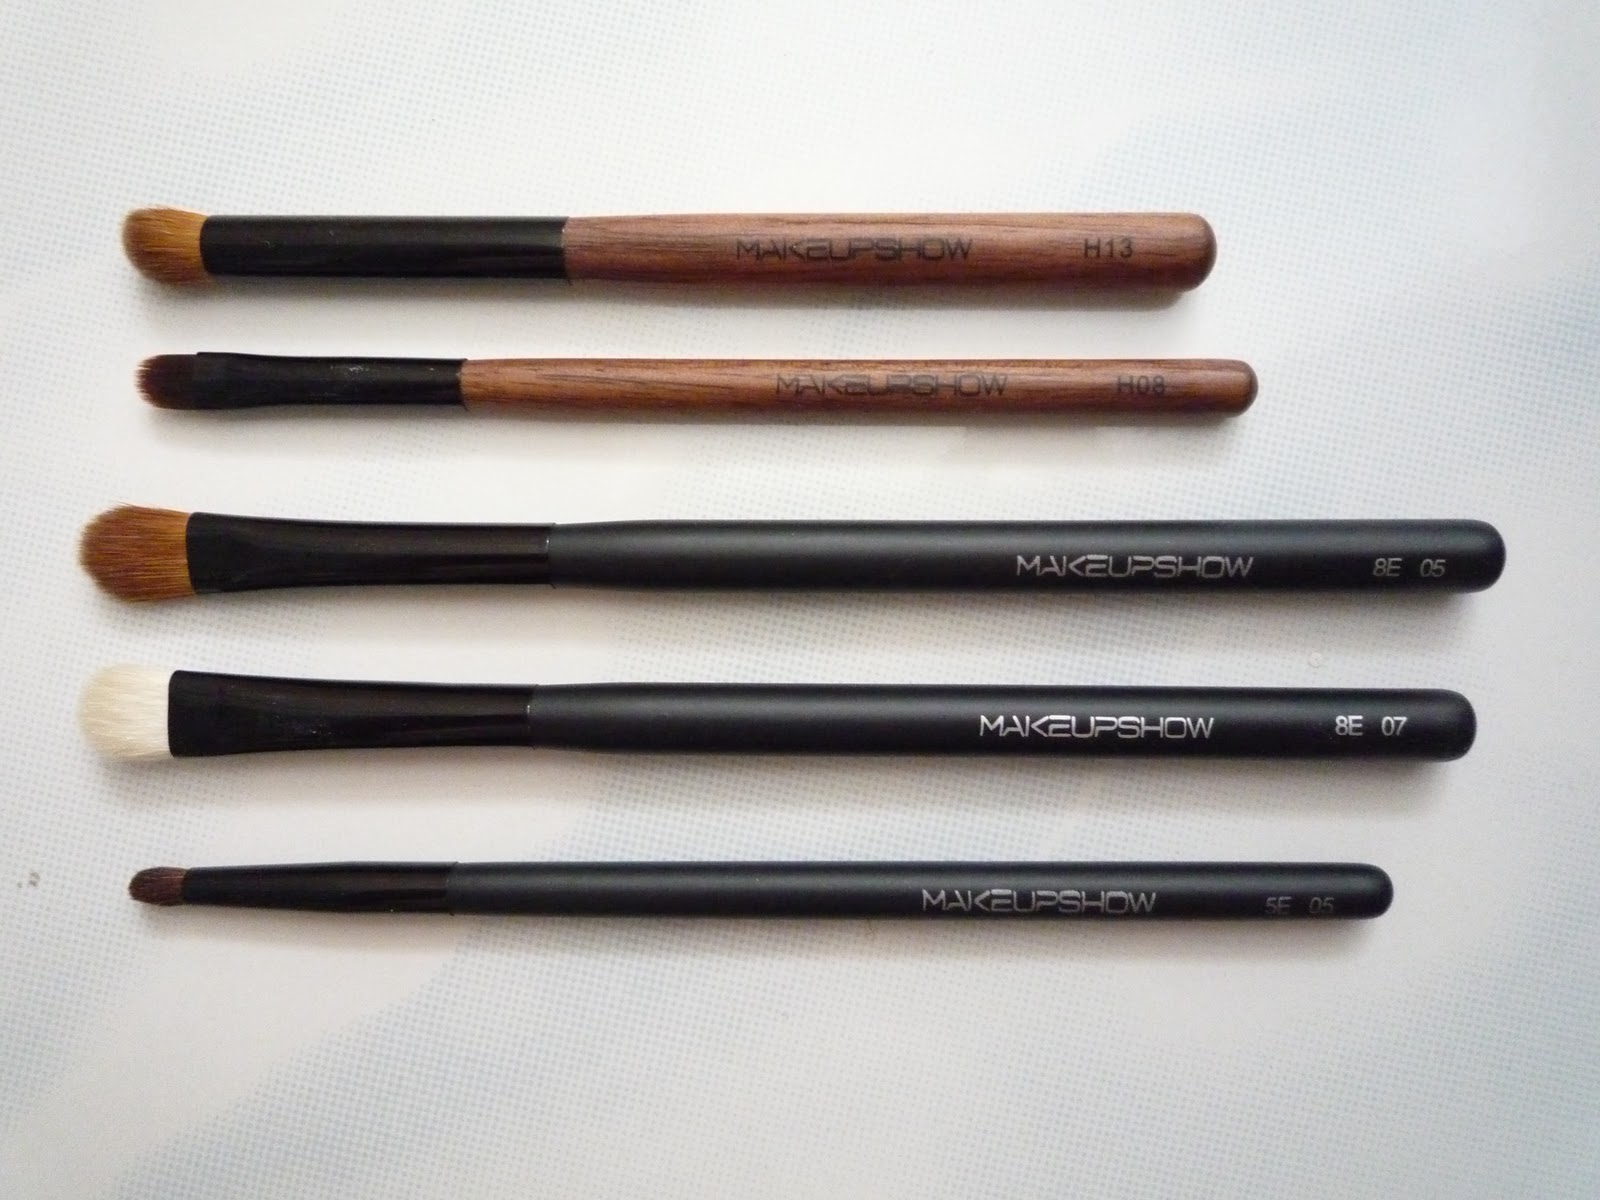 Makeup show makeup brushes